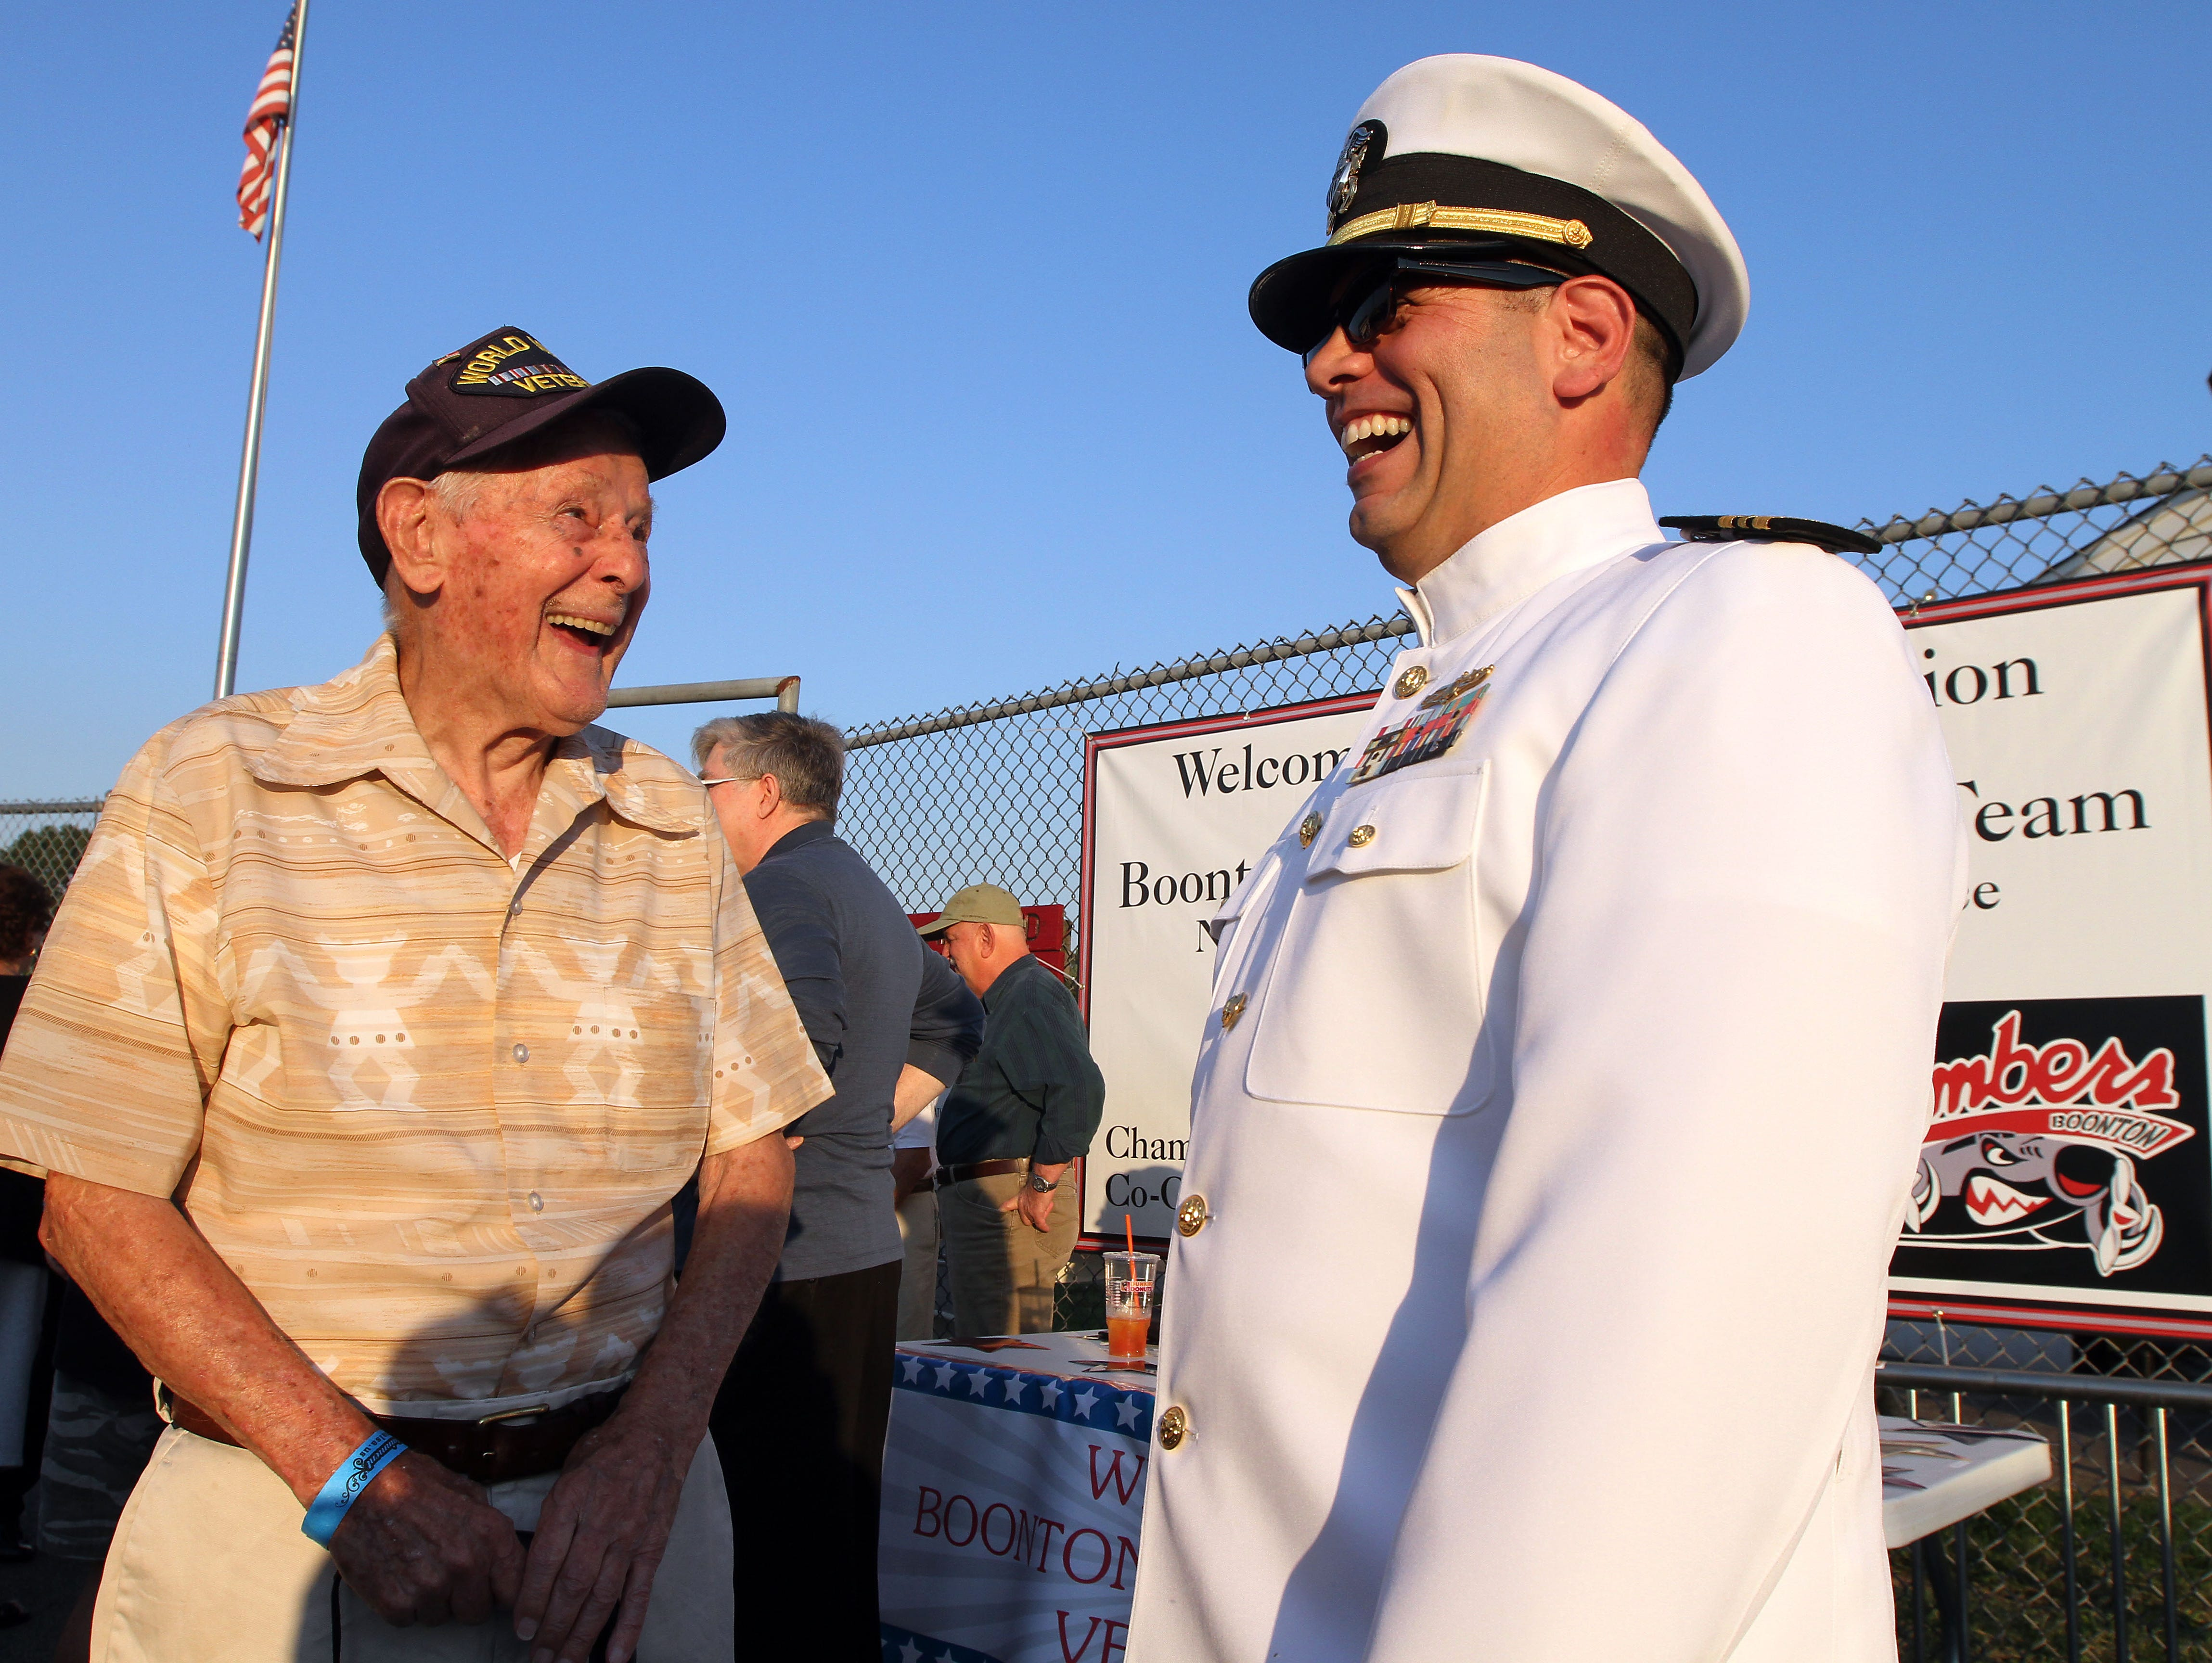 98-year-old World War II Air Force Veteran Steve Bolcar and Navy LCDR. Dennis Maida share a laugh before the Boonton vs Pequannock Friday night football matchup. Boonton High School honored its graduate military veterans during halftime. September 18, 2015, Boonton, NJ.